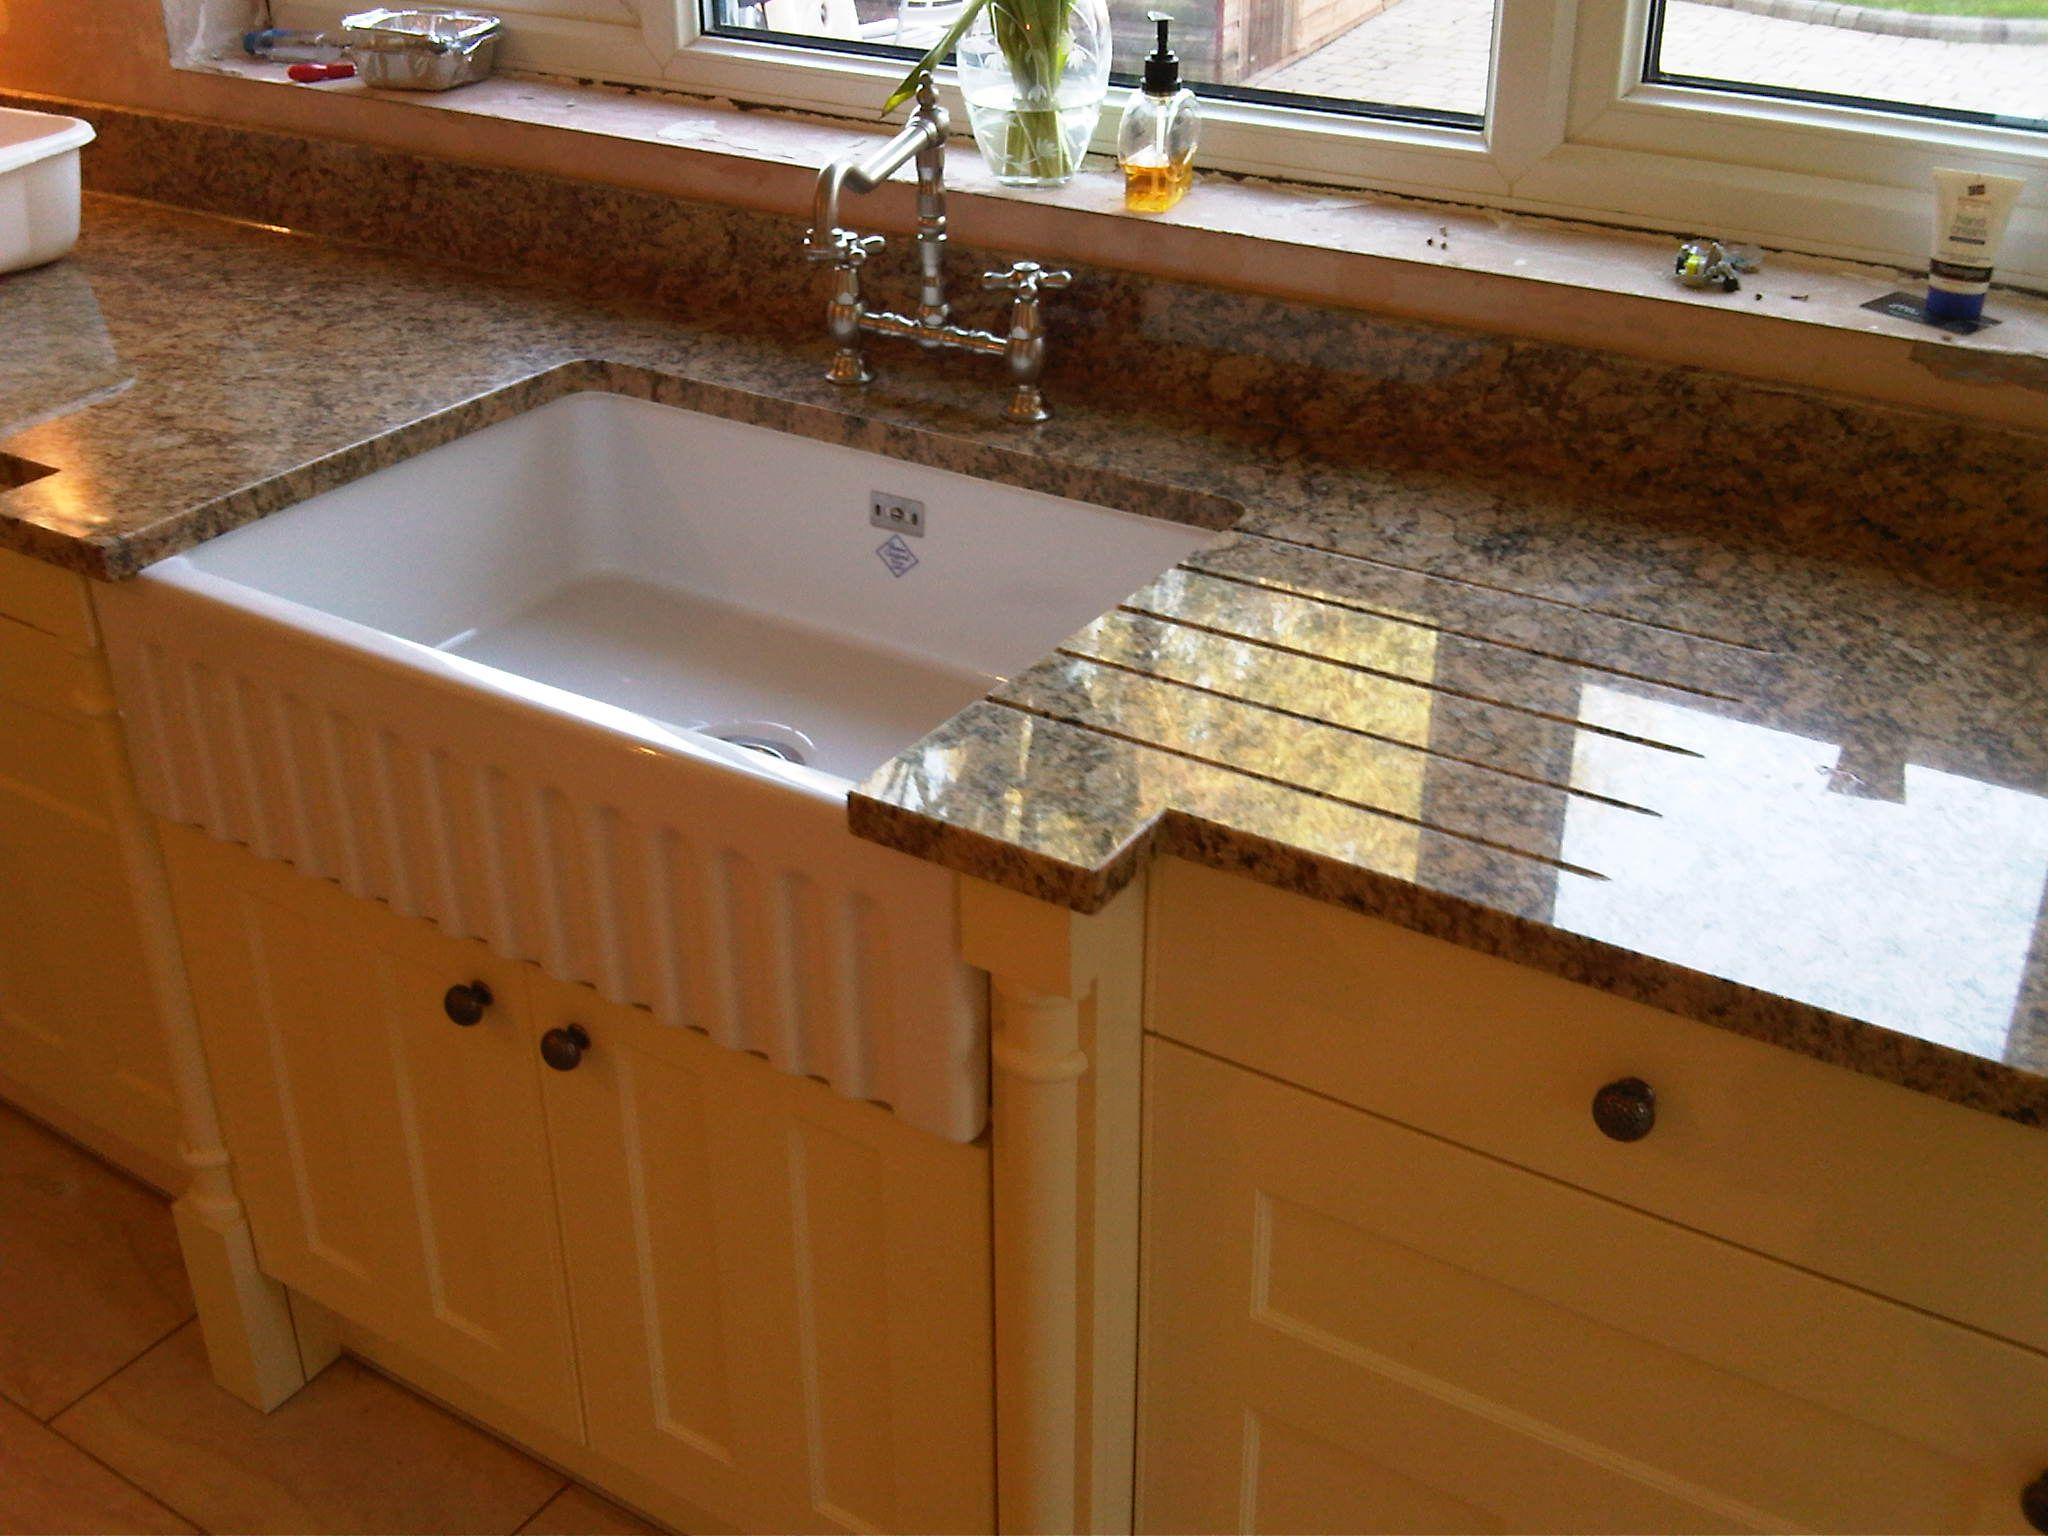 Kitchen Granite Worktop Baltic Brown Granite Kitchen Worktop With A Polished Sink Cut Out